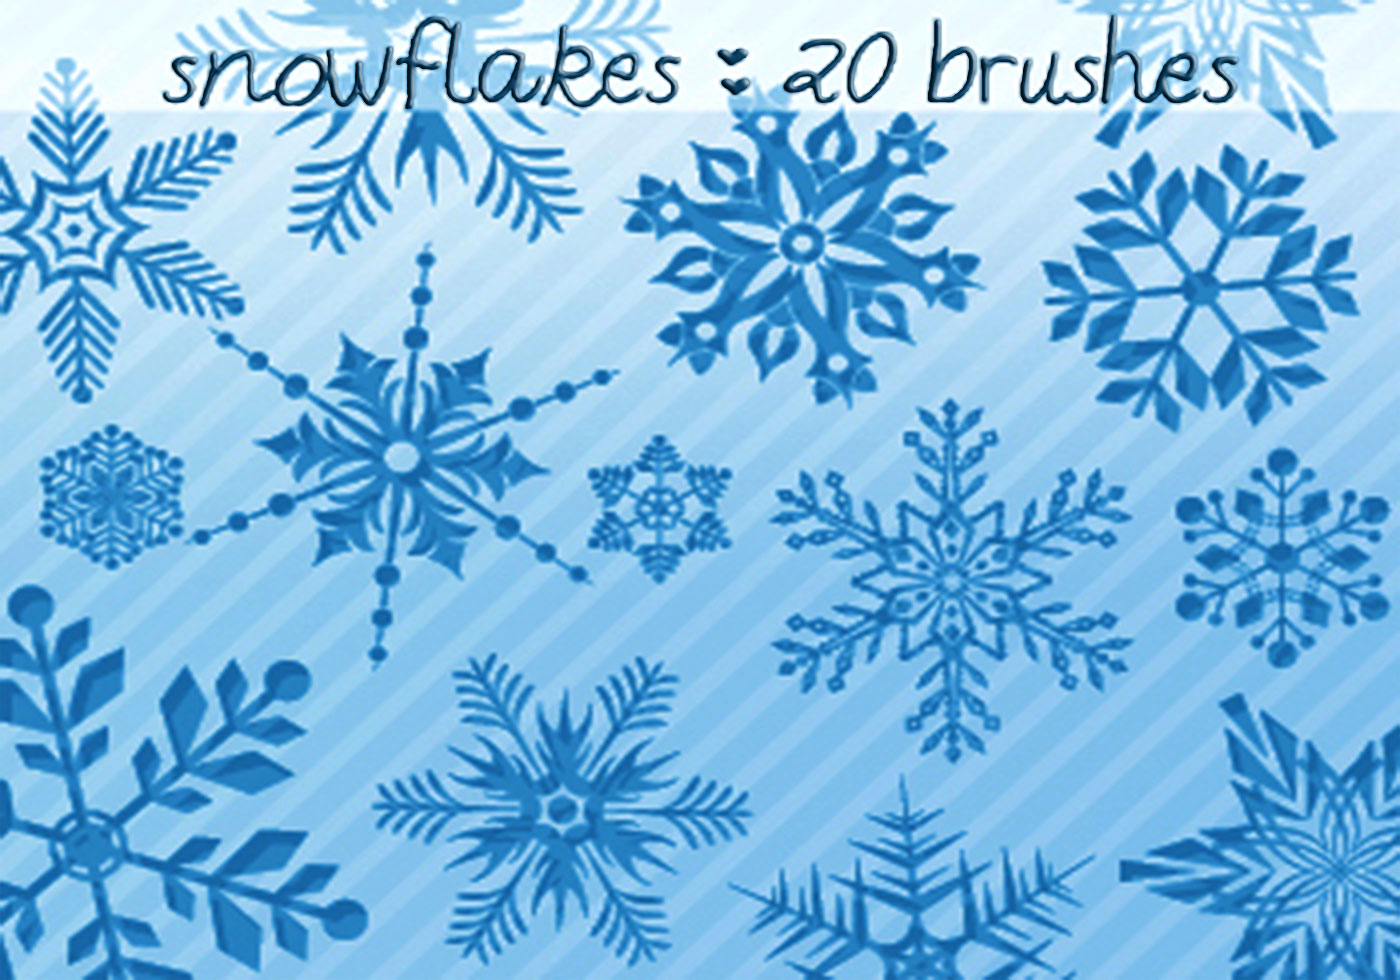 Falling Snow And Snowflakes Photoshop Brushes For Free ...